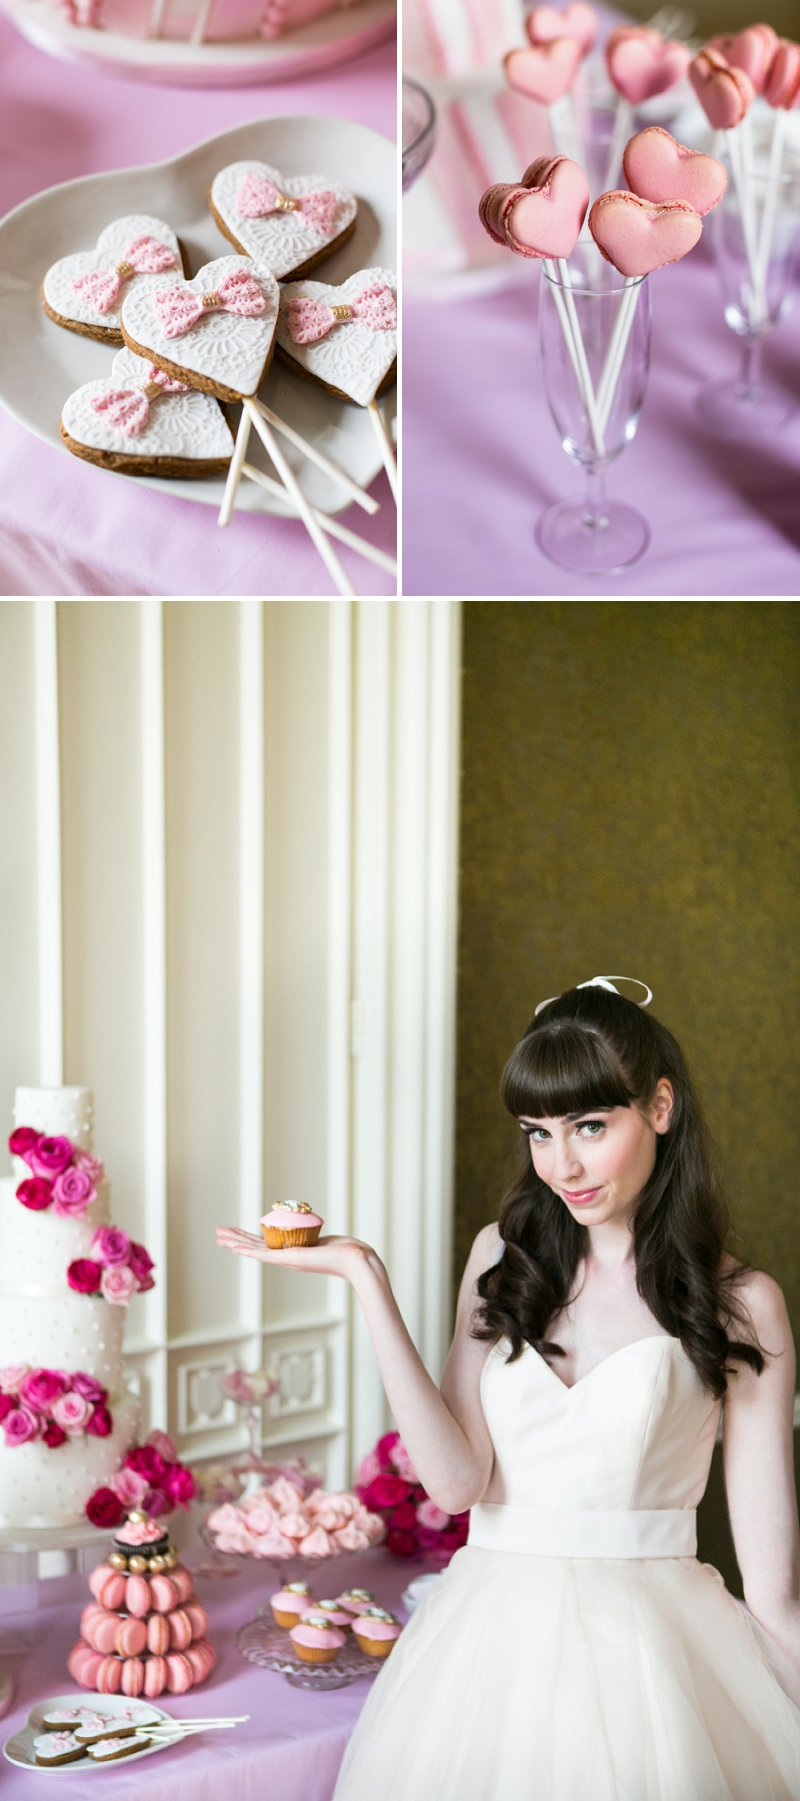 Fun Girly Bridal Inspiration Shoot At Nonsuch Mansion Inspired By Holly Golightly With Bright Pink Details A Vintage Wedding Car With Images by Anneli Marinovich Photography 5